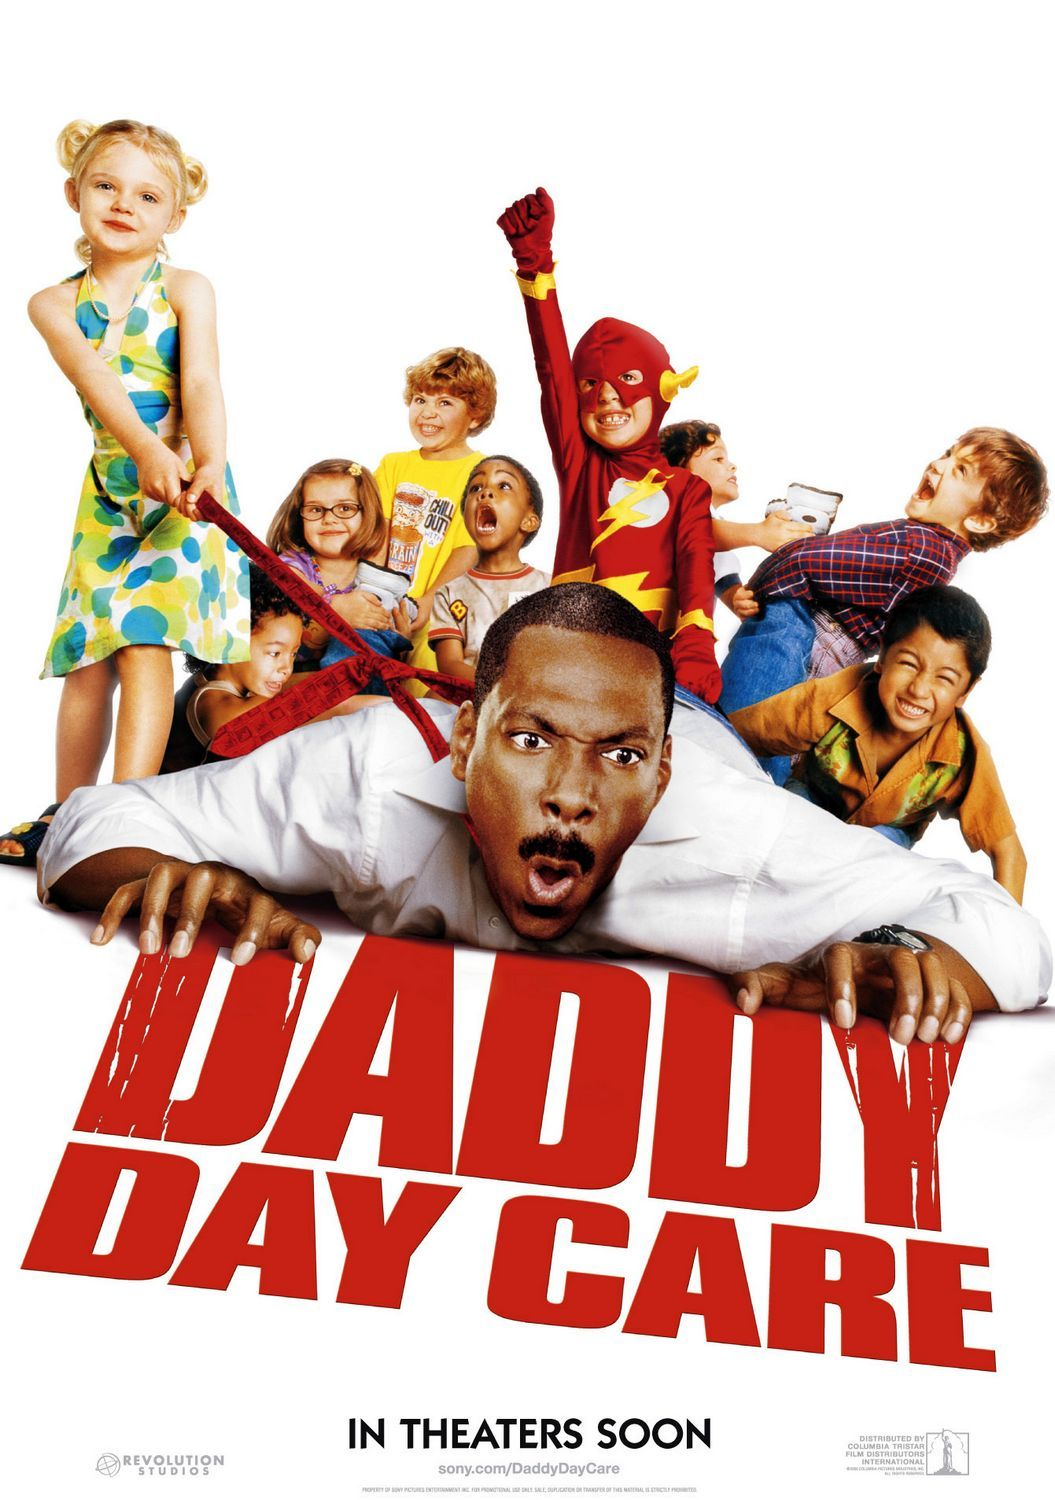 This Movie Is Mockery Of The Career I Am Going Into I Am Going To Be A Preschool Teacher Peliculas Completas Peliculas Peliculas Completas Gratis